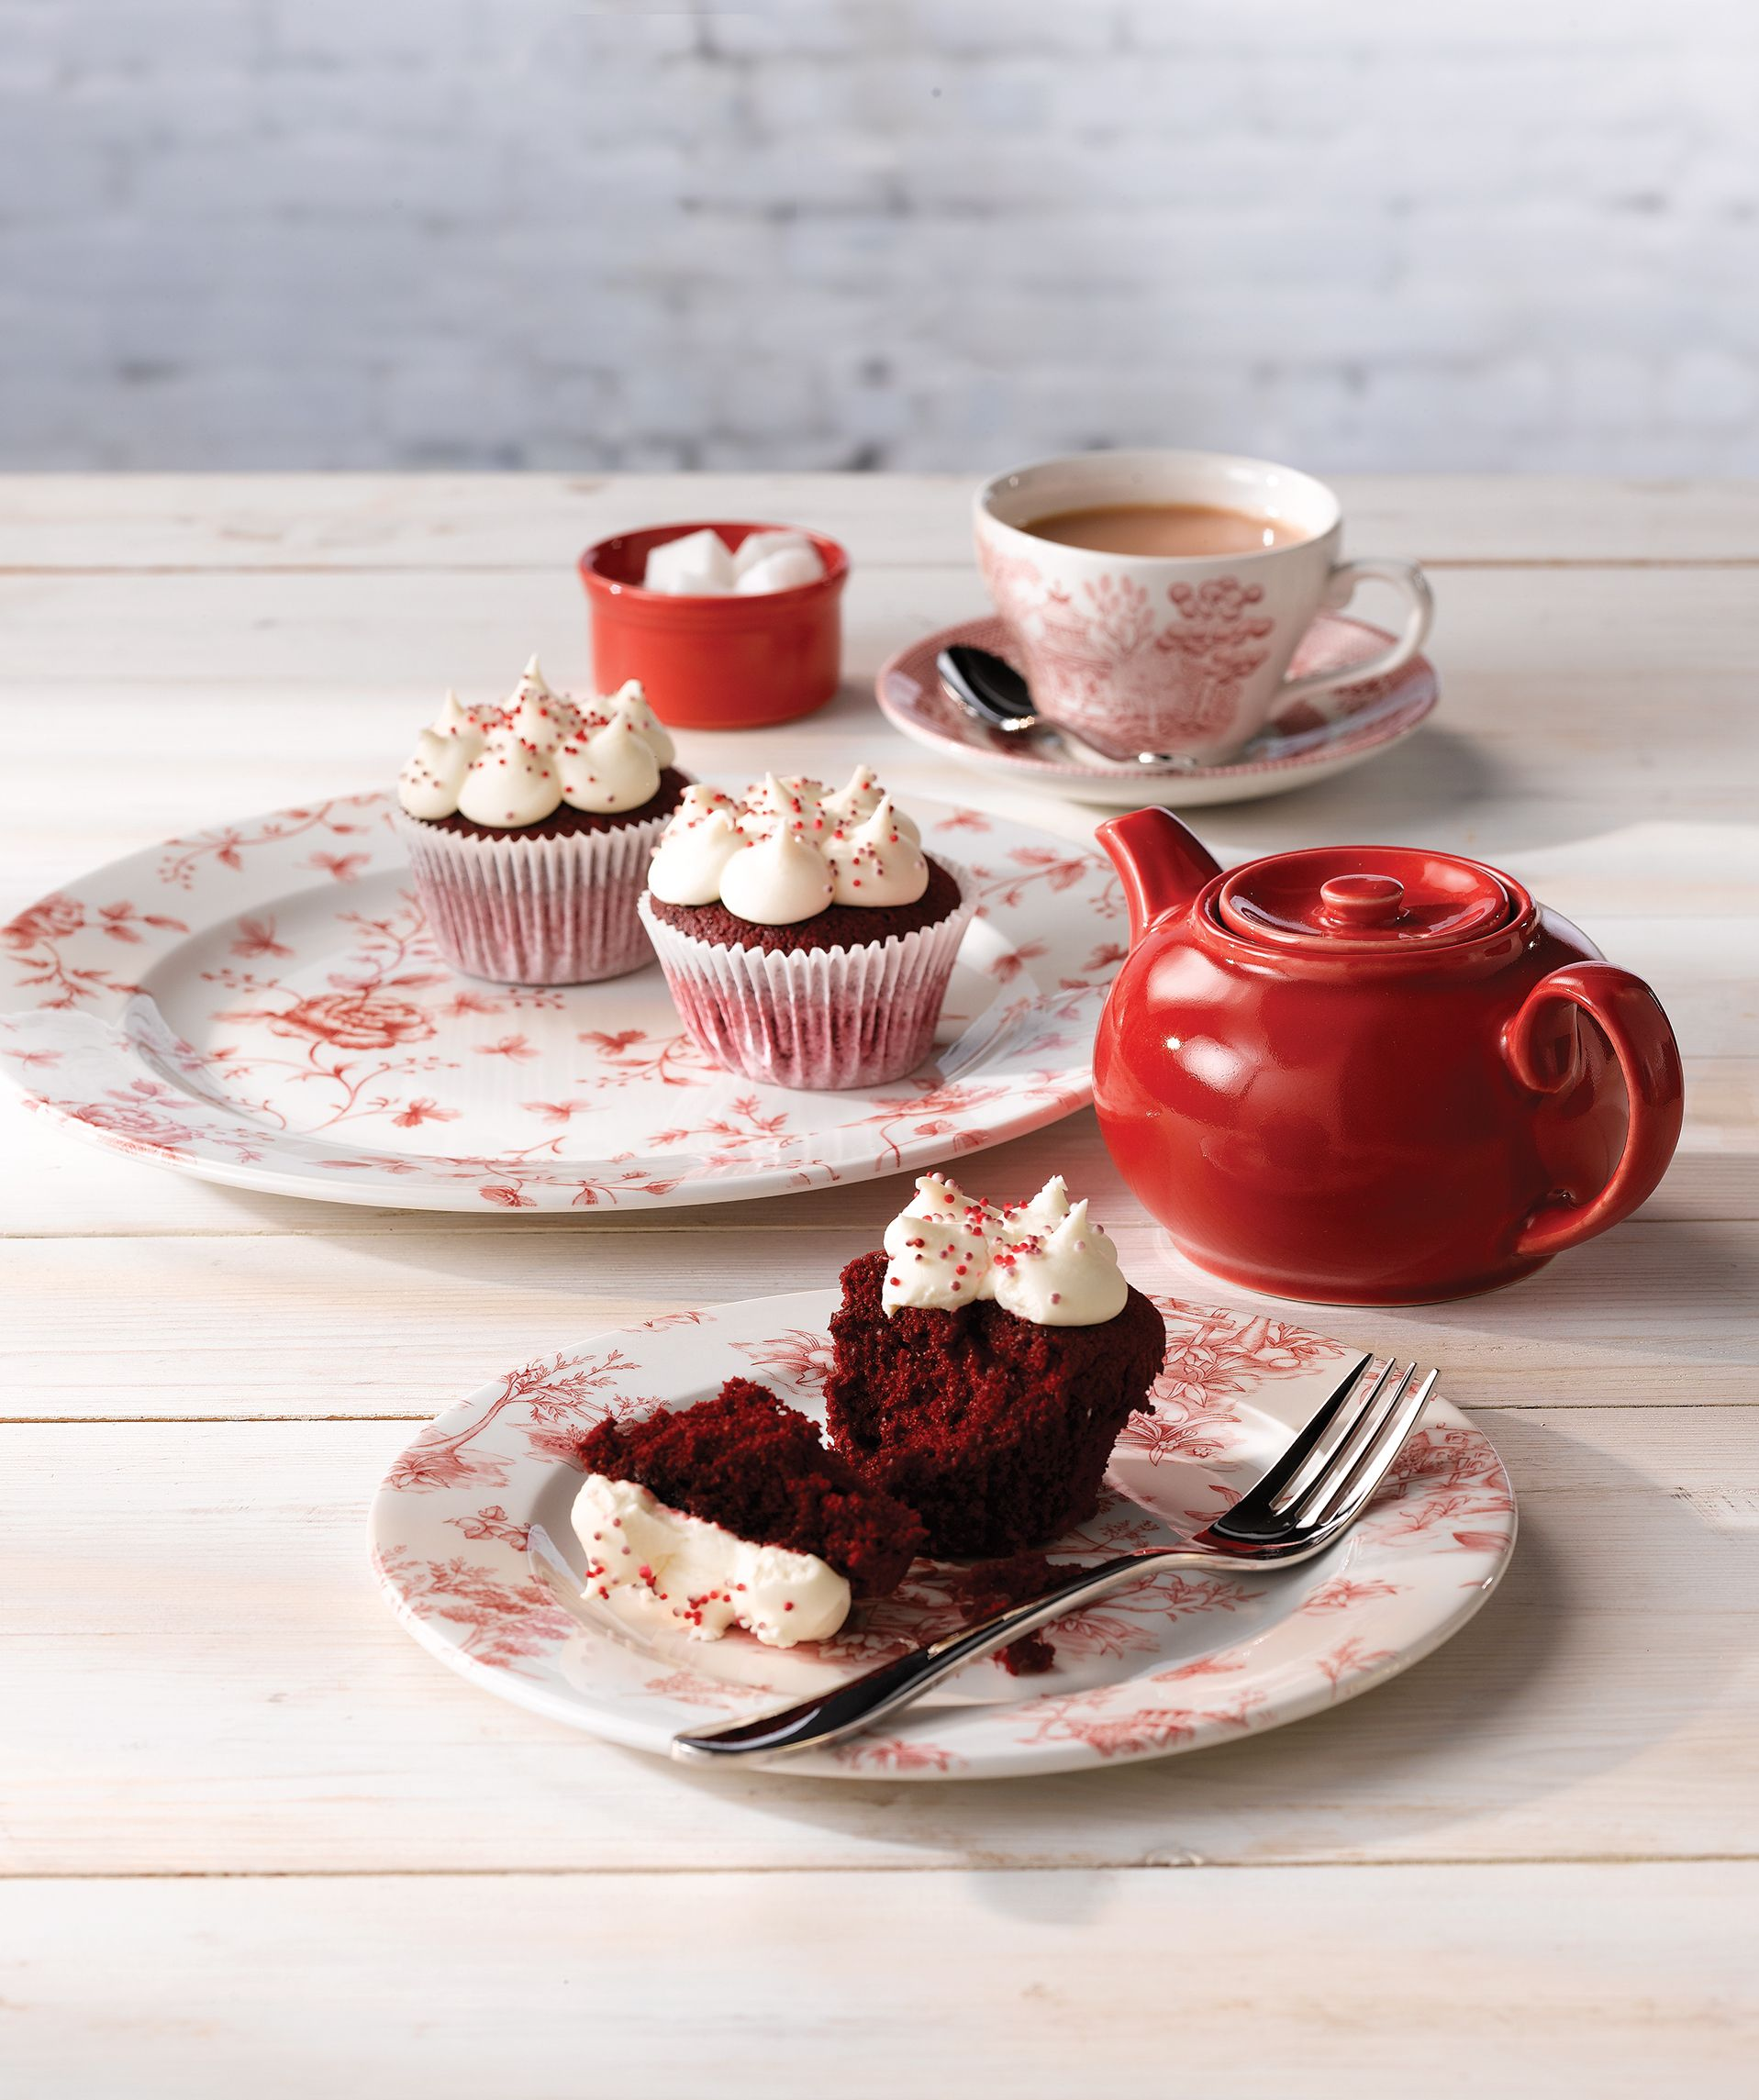 The Vintage range offers beautiful floral tableware including plates cups \u0026 saucers. & The Vintage range offers beautiful floral tableware including plates ...